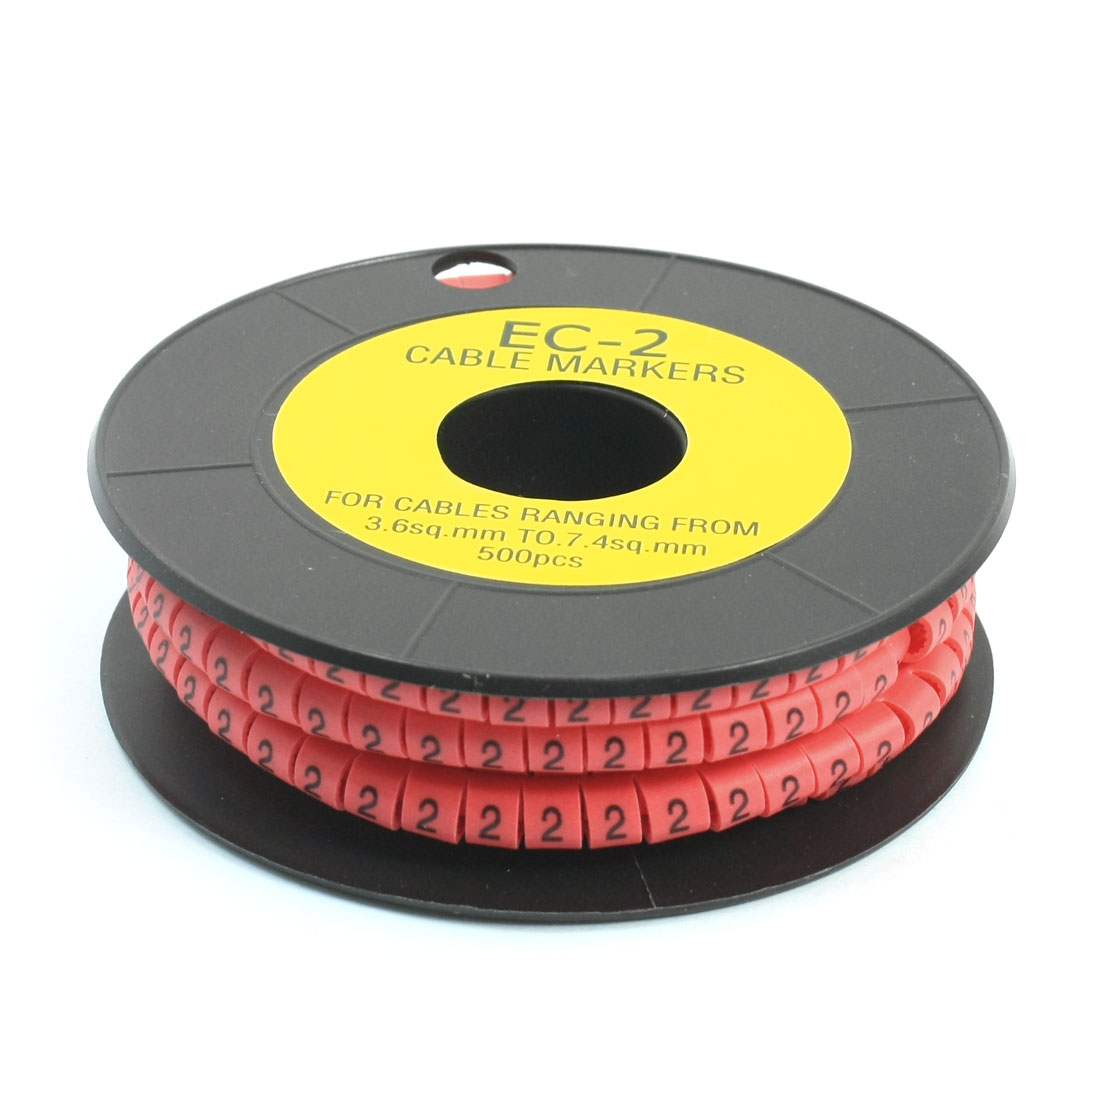 500Pcs EC-2 Arabic Numeral 2 Print Pink Flexible PVC Concave Shaped Wire Cable Markers Roll for 3.6-7.4mm2 Tube Label